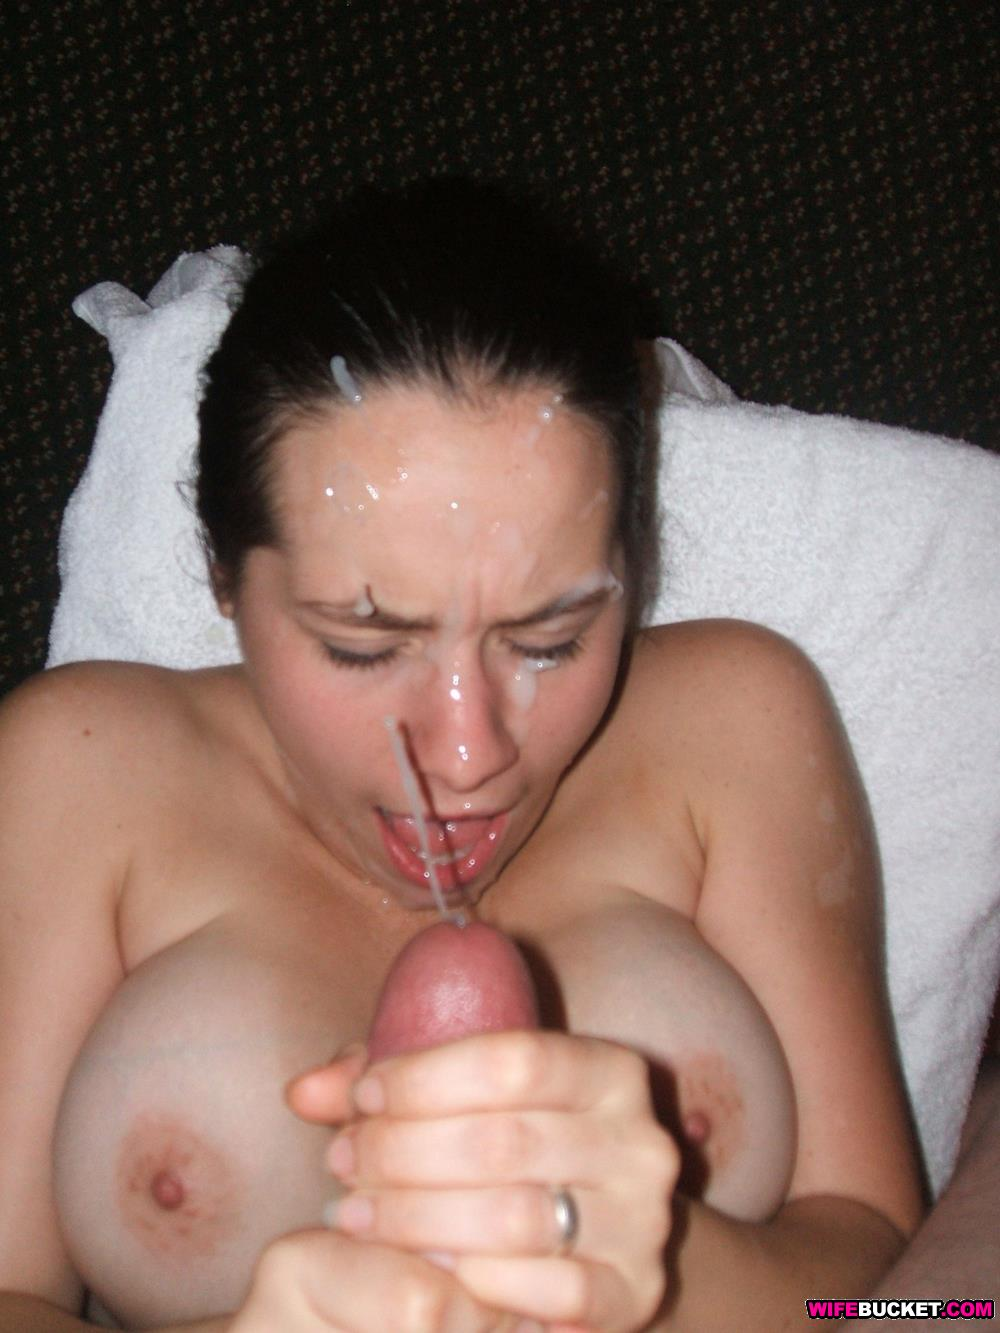 Homemade huge facial